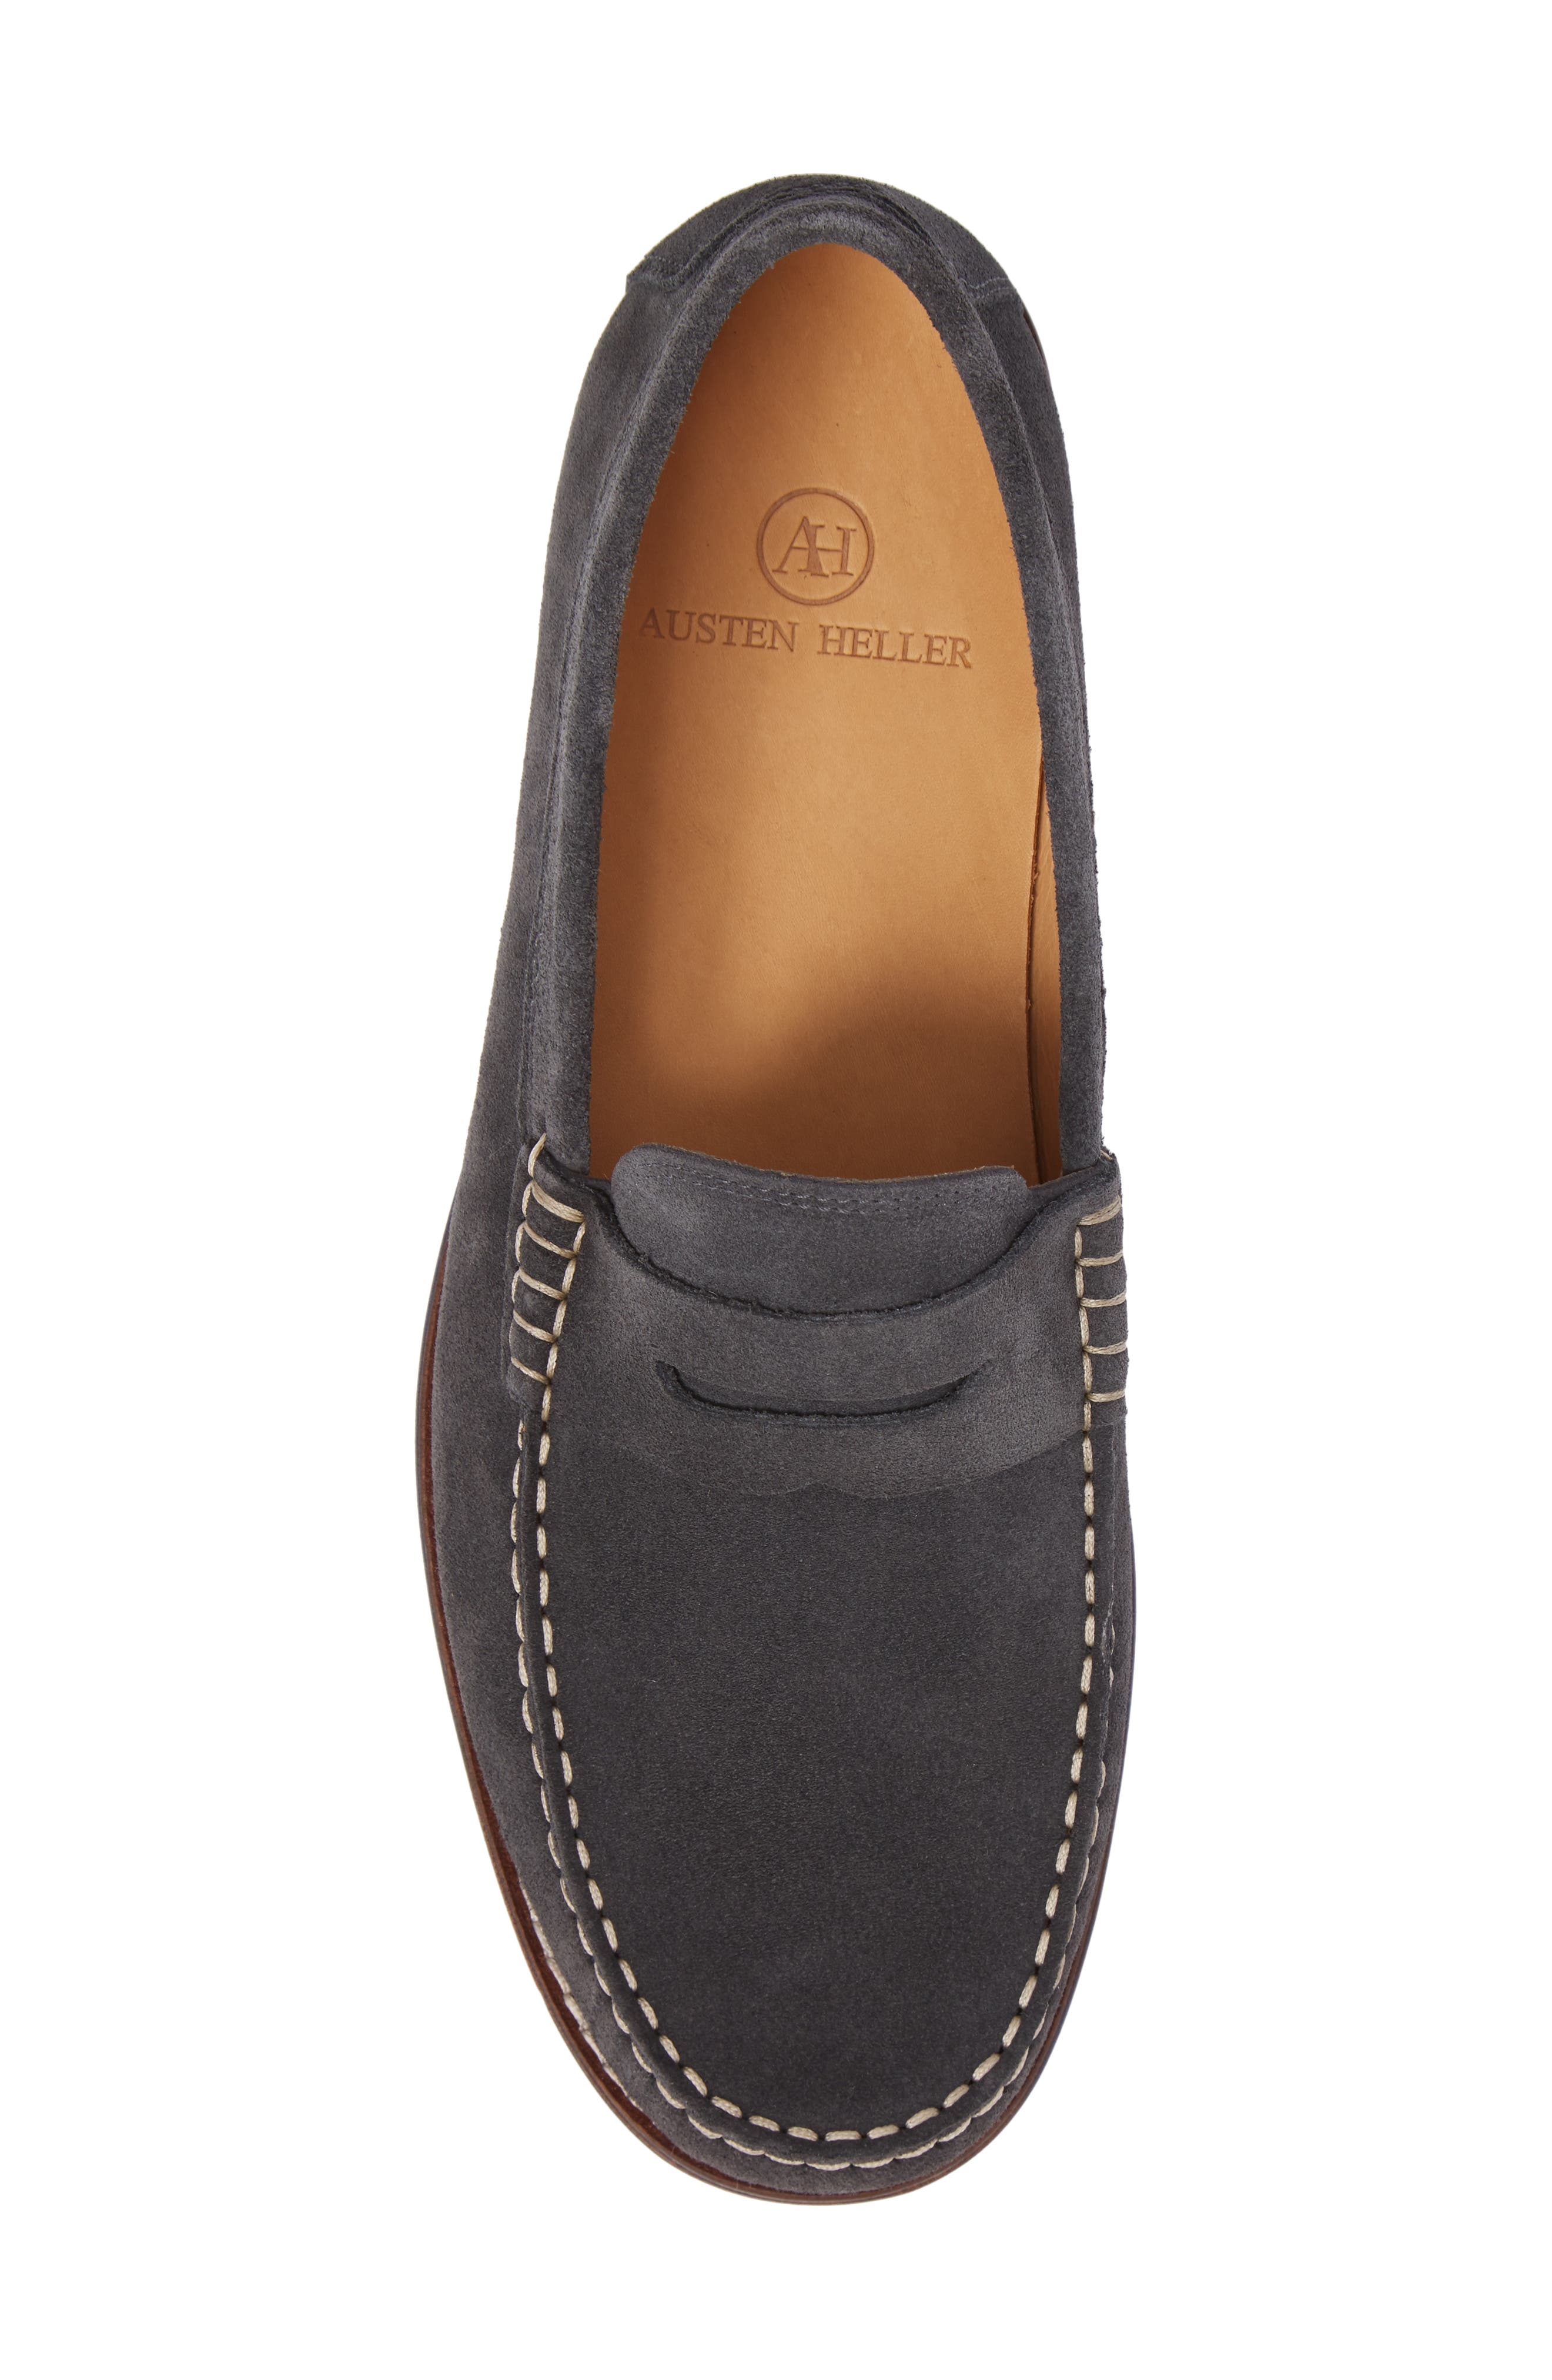 Ripley Penny Loafer,                             Alternate thumbnail 5, color,                             GREY LEATHER